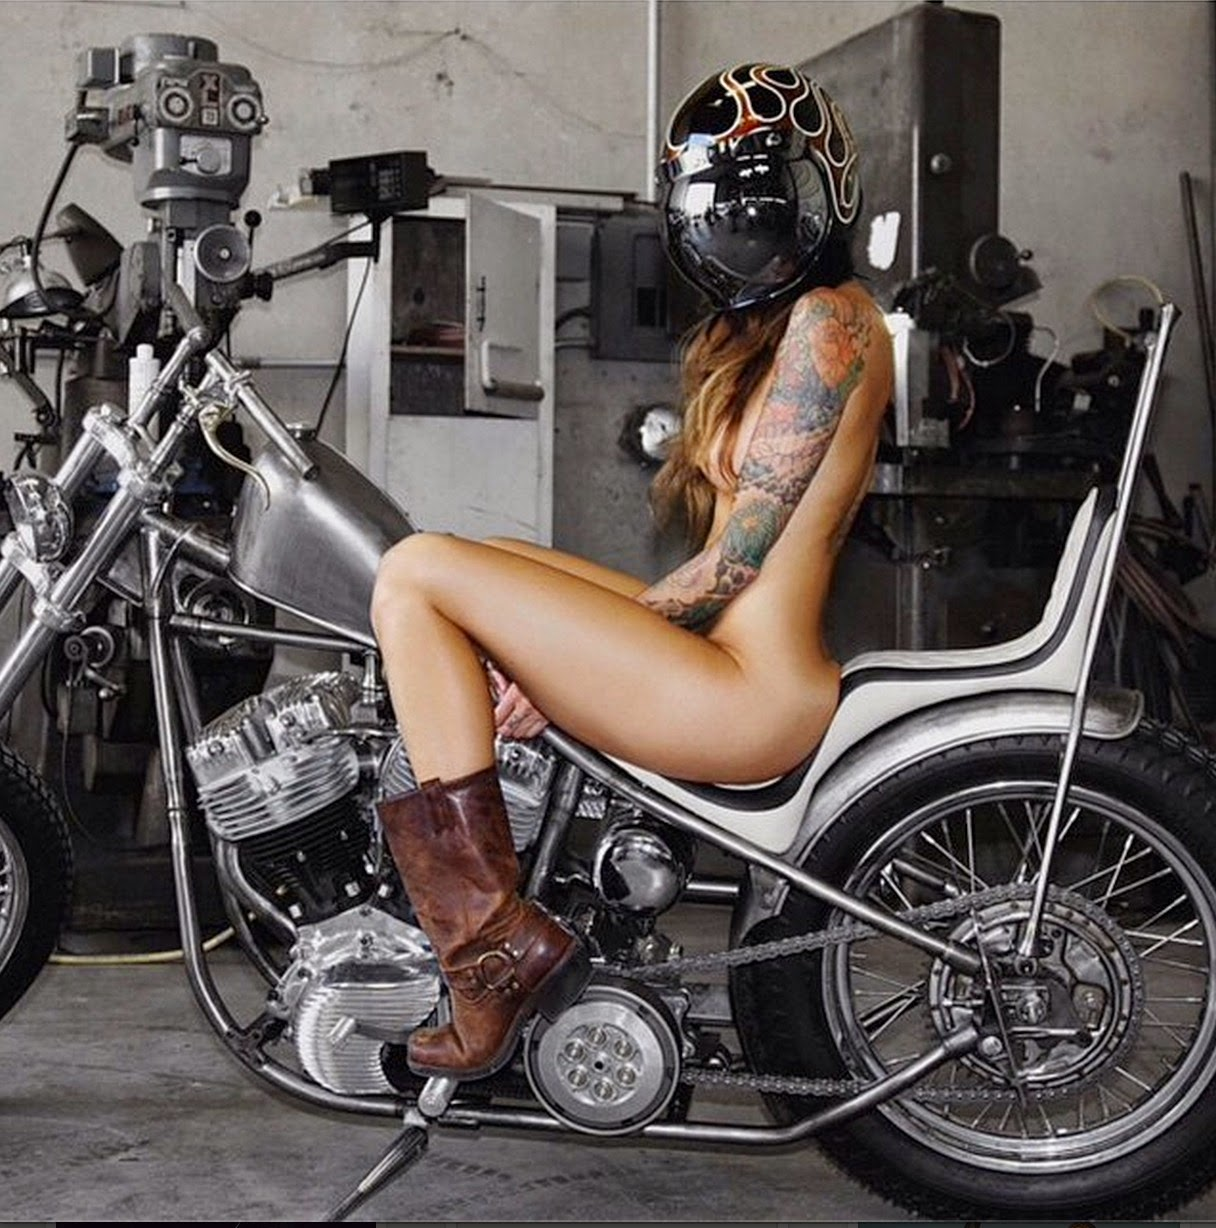 Nude motorcycle form painted black